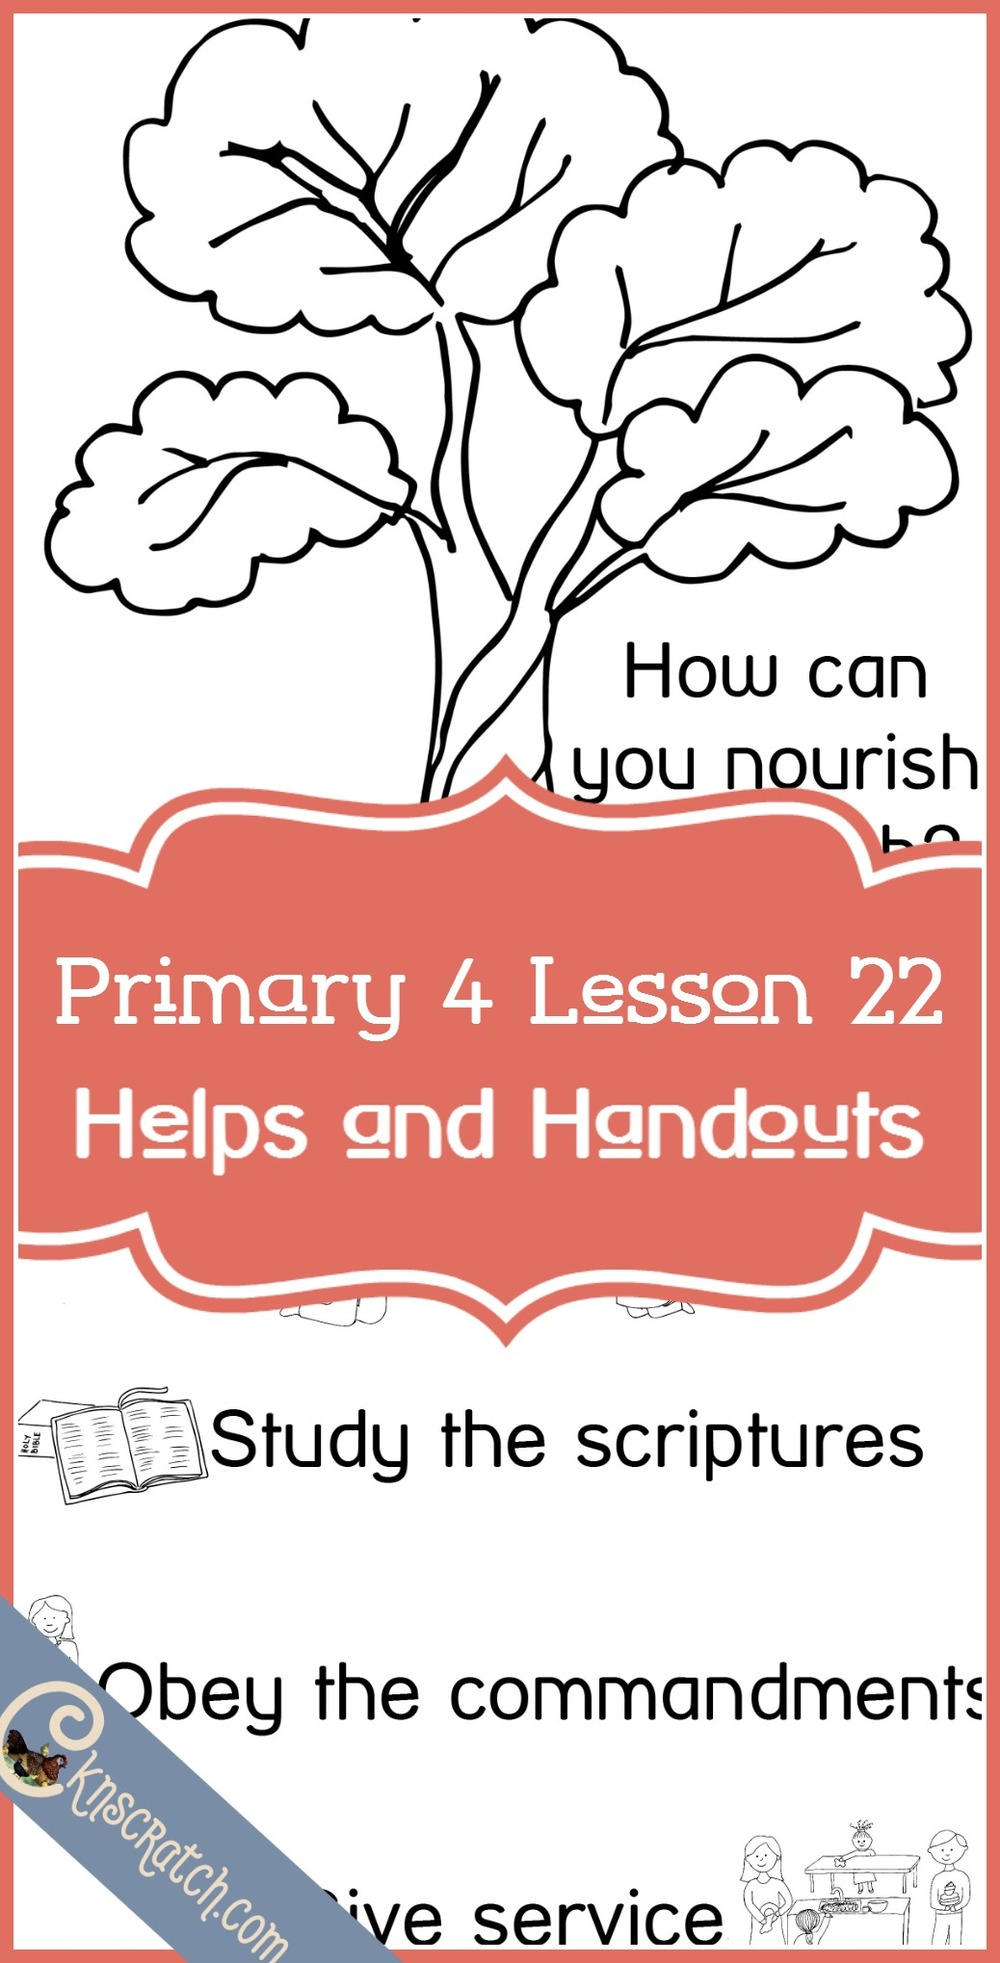 This is helpful- LDS lesson handouts and helps for Primary 4 Lesson 22: Alma teaches about faith